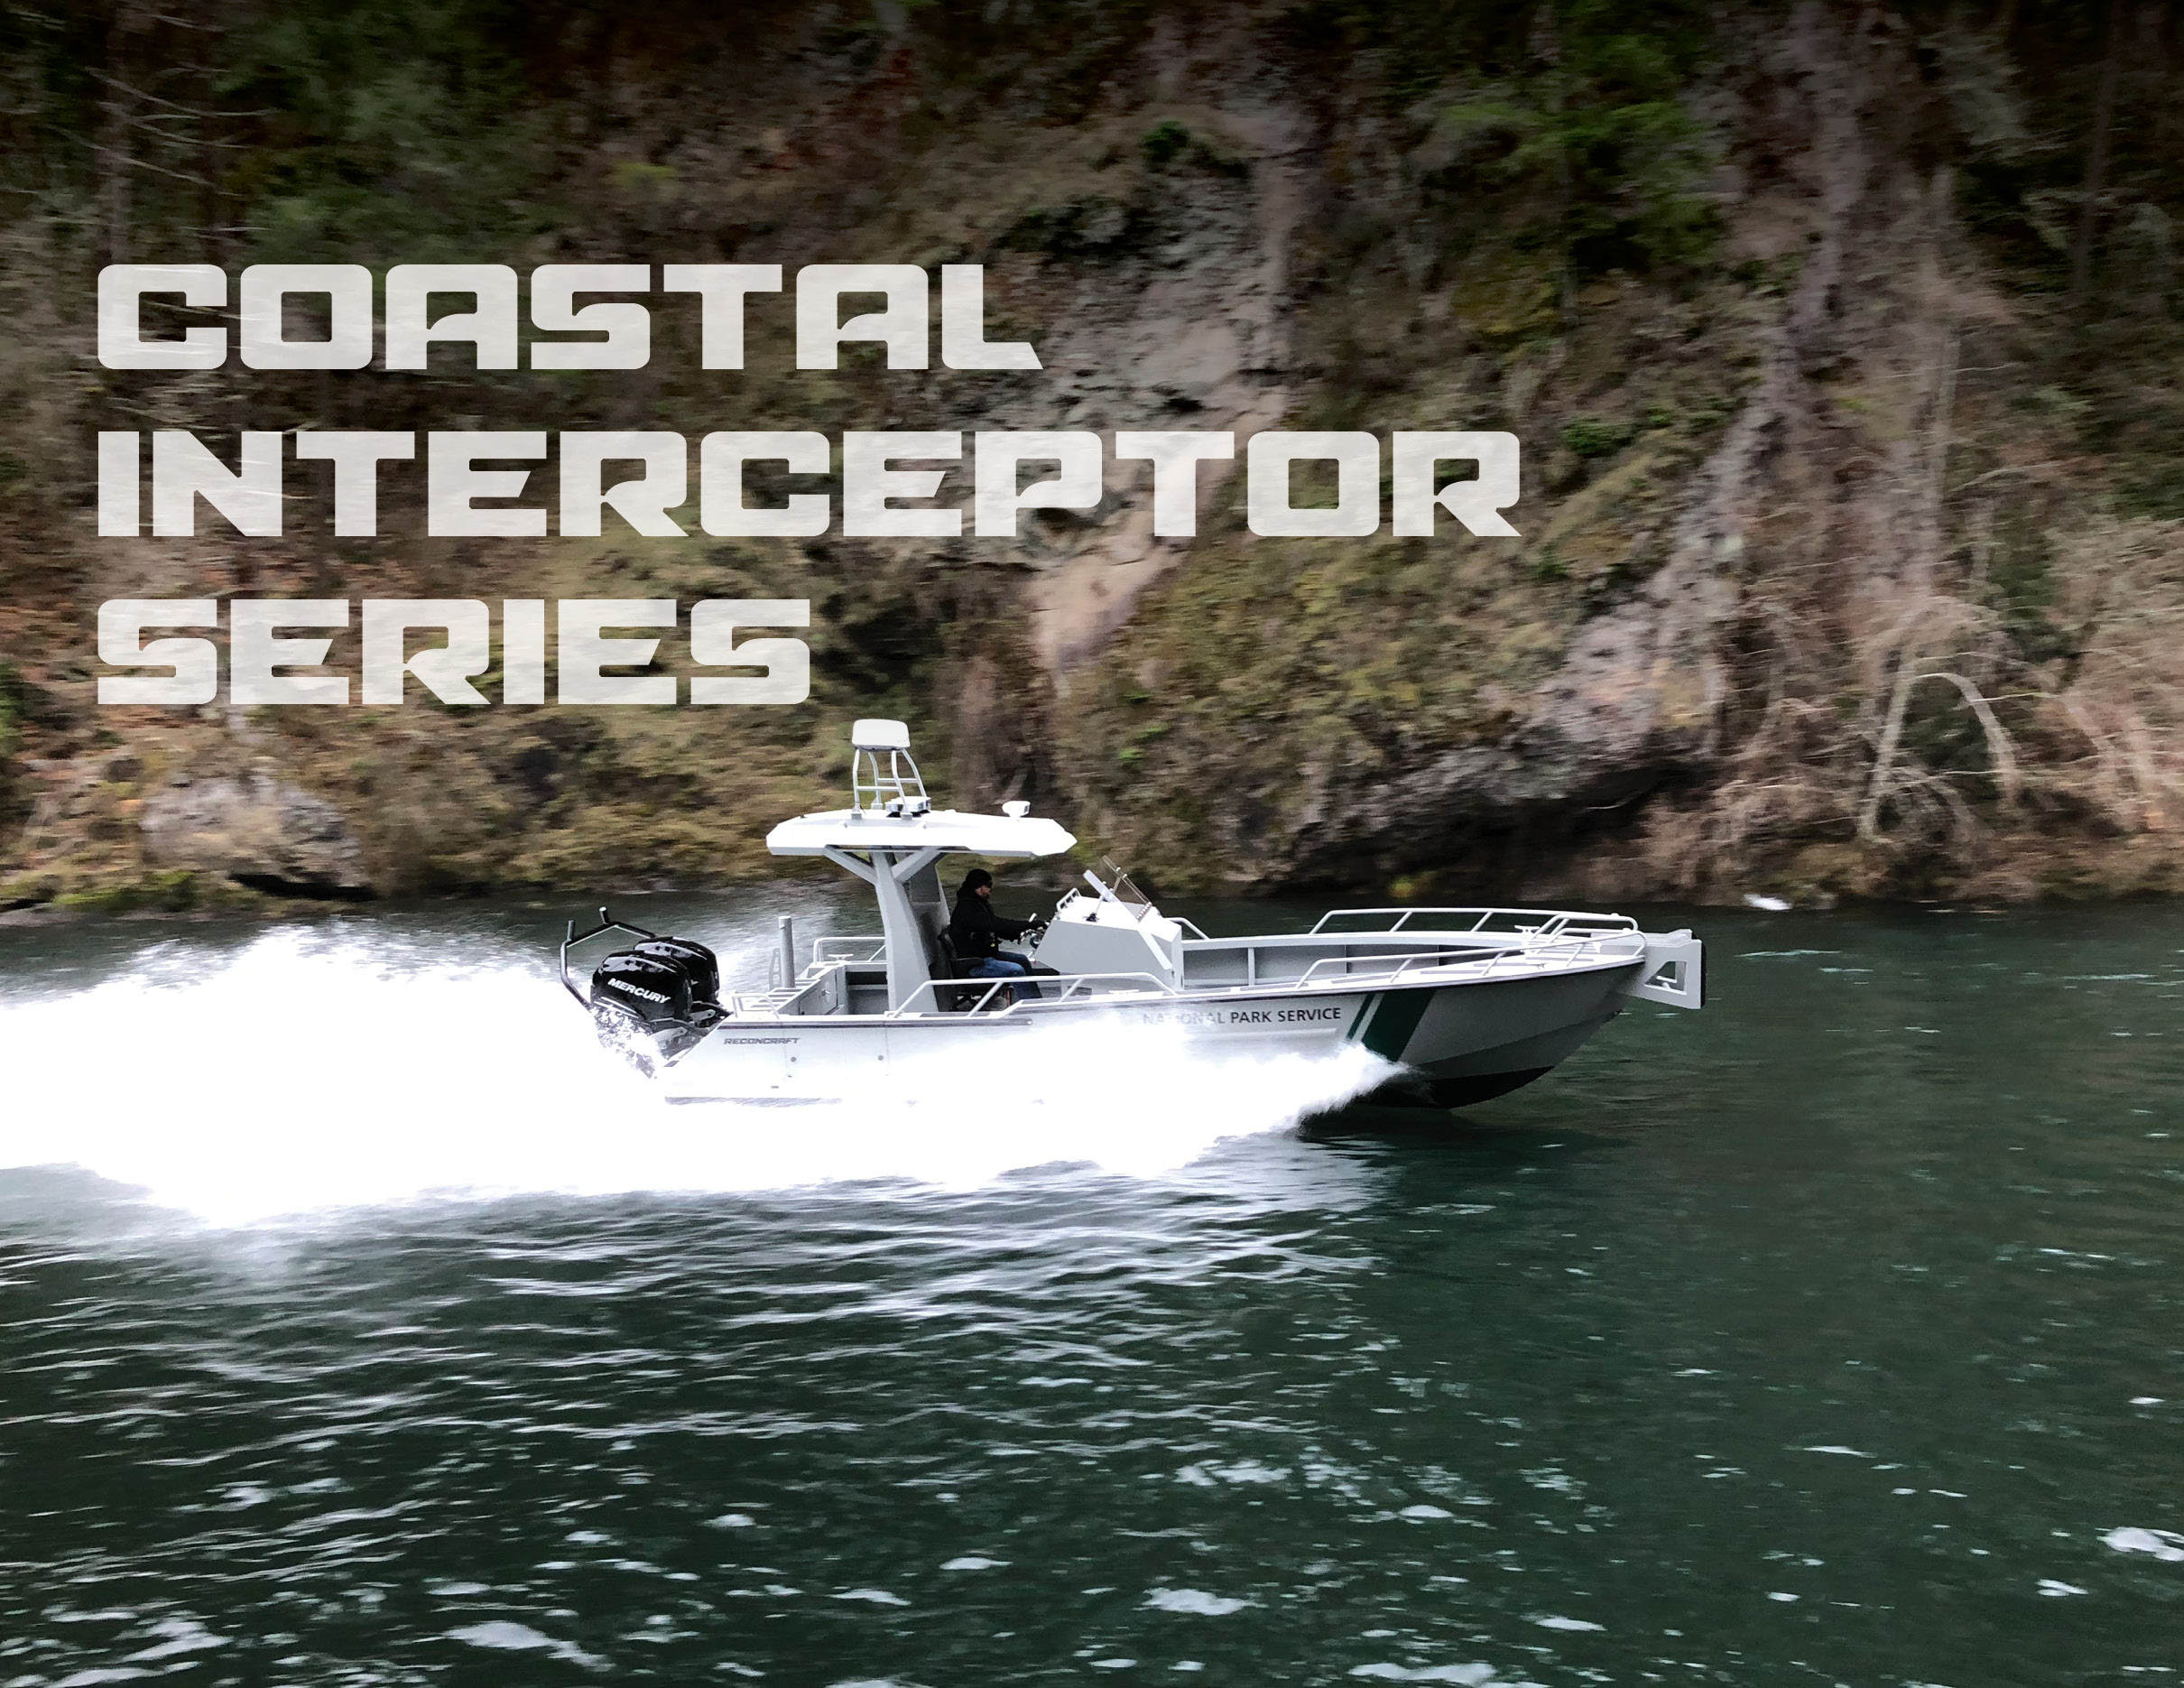 ReconCraft Coastal Interceptor Series